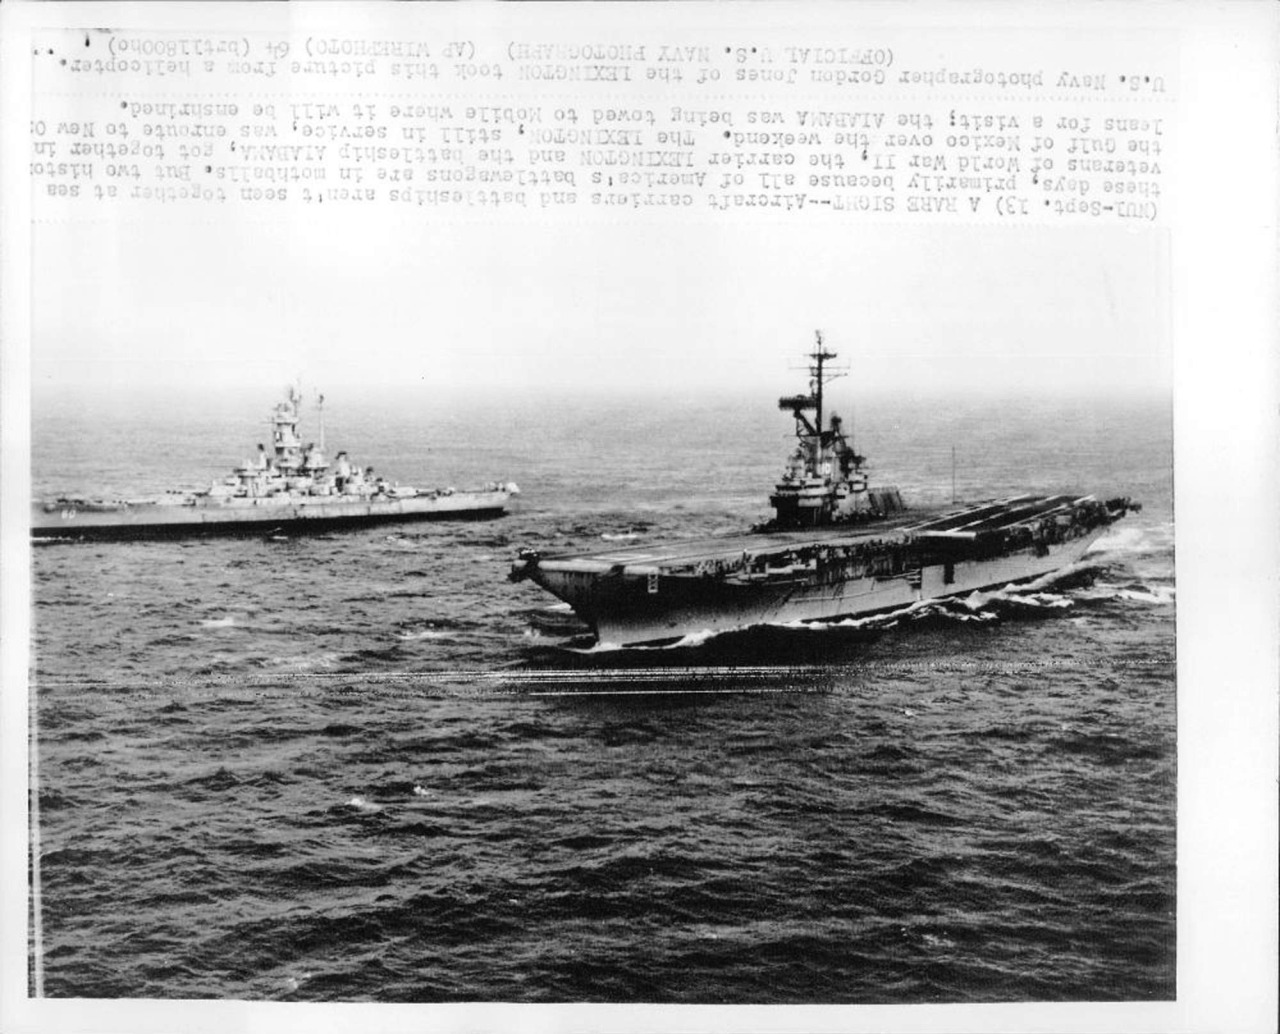 """""""Sept. 13[1964] A RARE SIGHT—Aircraft carriers and battleships aren't seen together at sea these days, primarily because all of America's battlewagons are in mothballs. But two historic veterans of WW II, the carrier Lexington and the battleship Alabama got together in the Gulf of Mexico over the weekend. The Lexington, still in service, was en route to New Orleans for a visit; the Alabama was being towed to Mobile where it will be enshrined."""""""